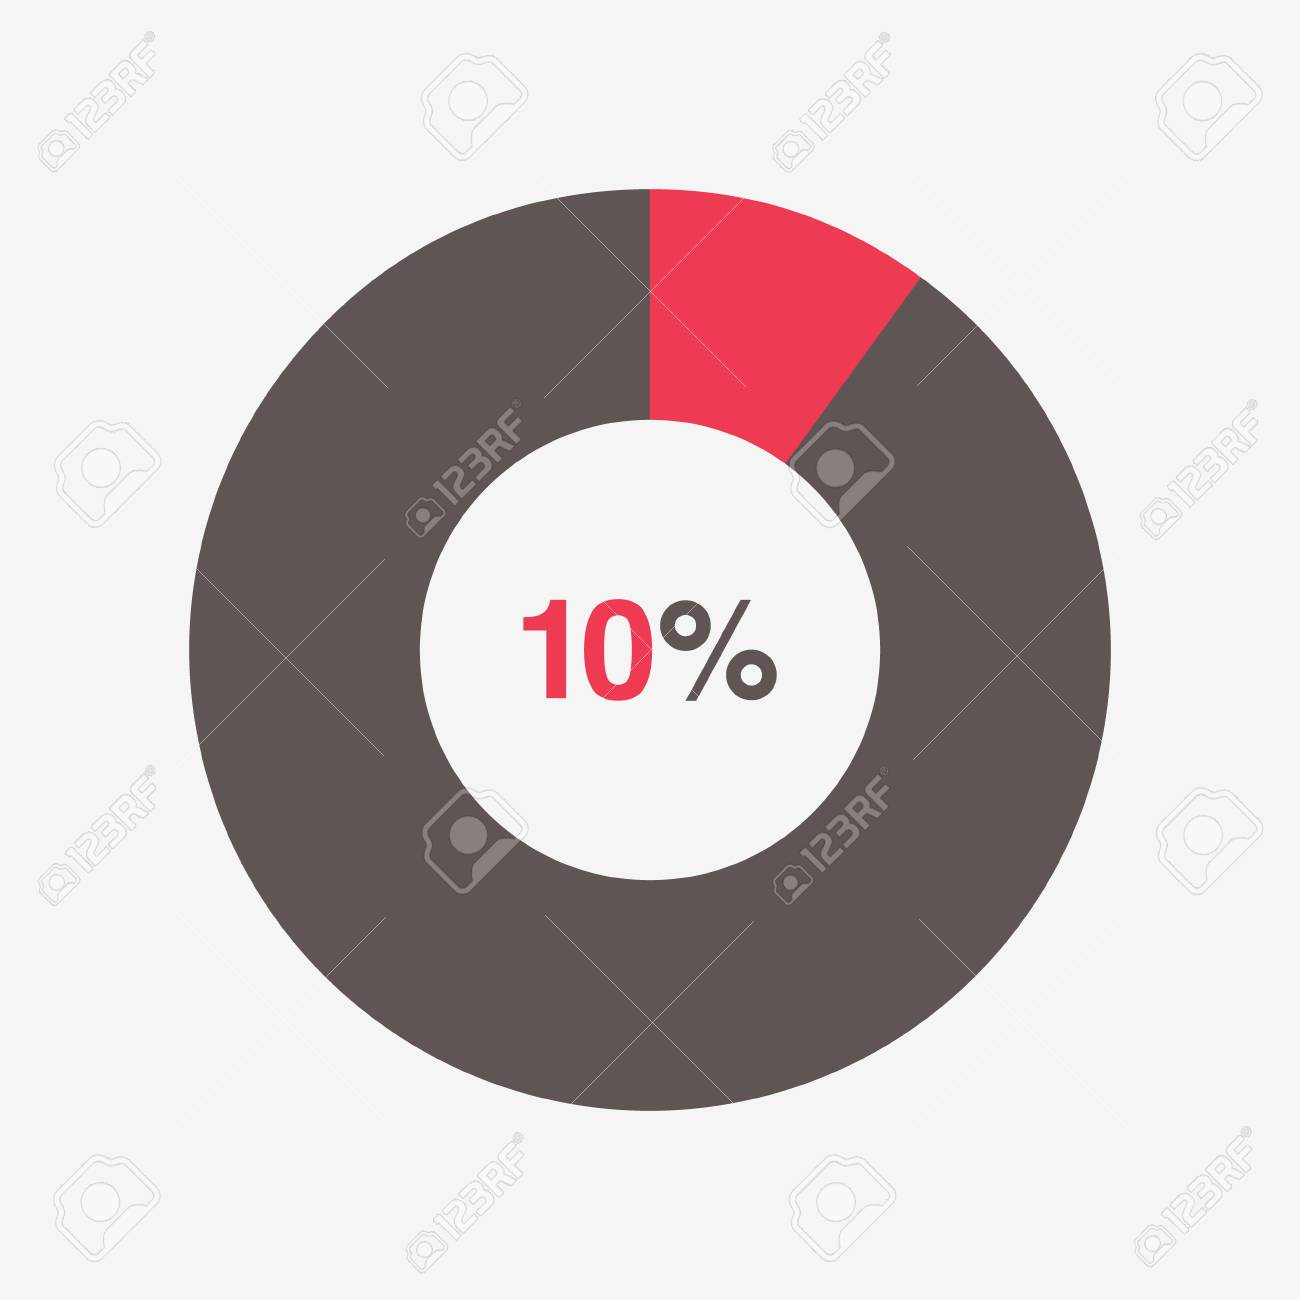 Icon Red And Black Chart 10 Percent, Pie Chart Vector Royalty Free.